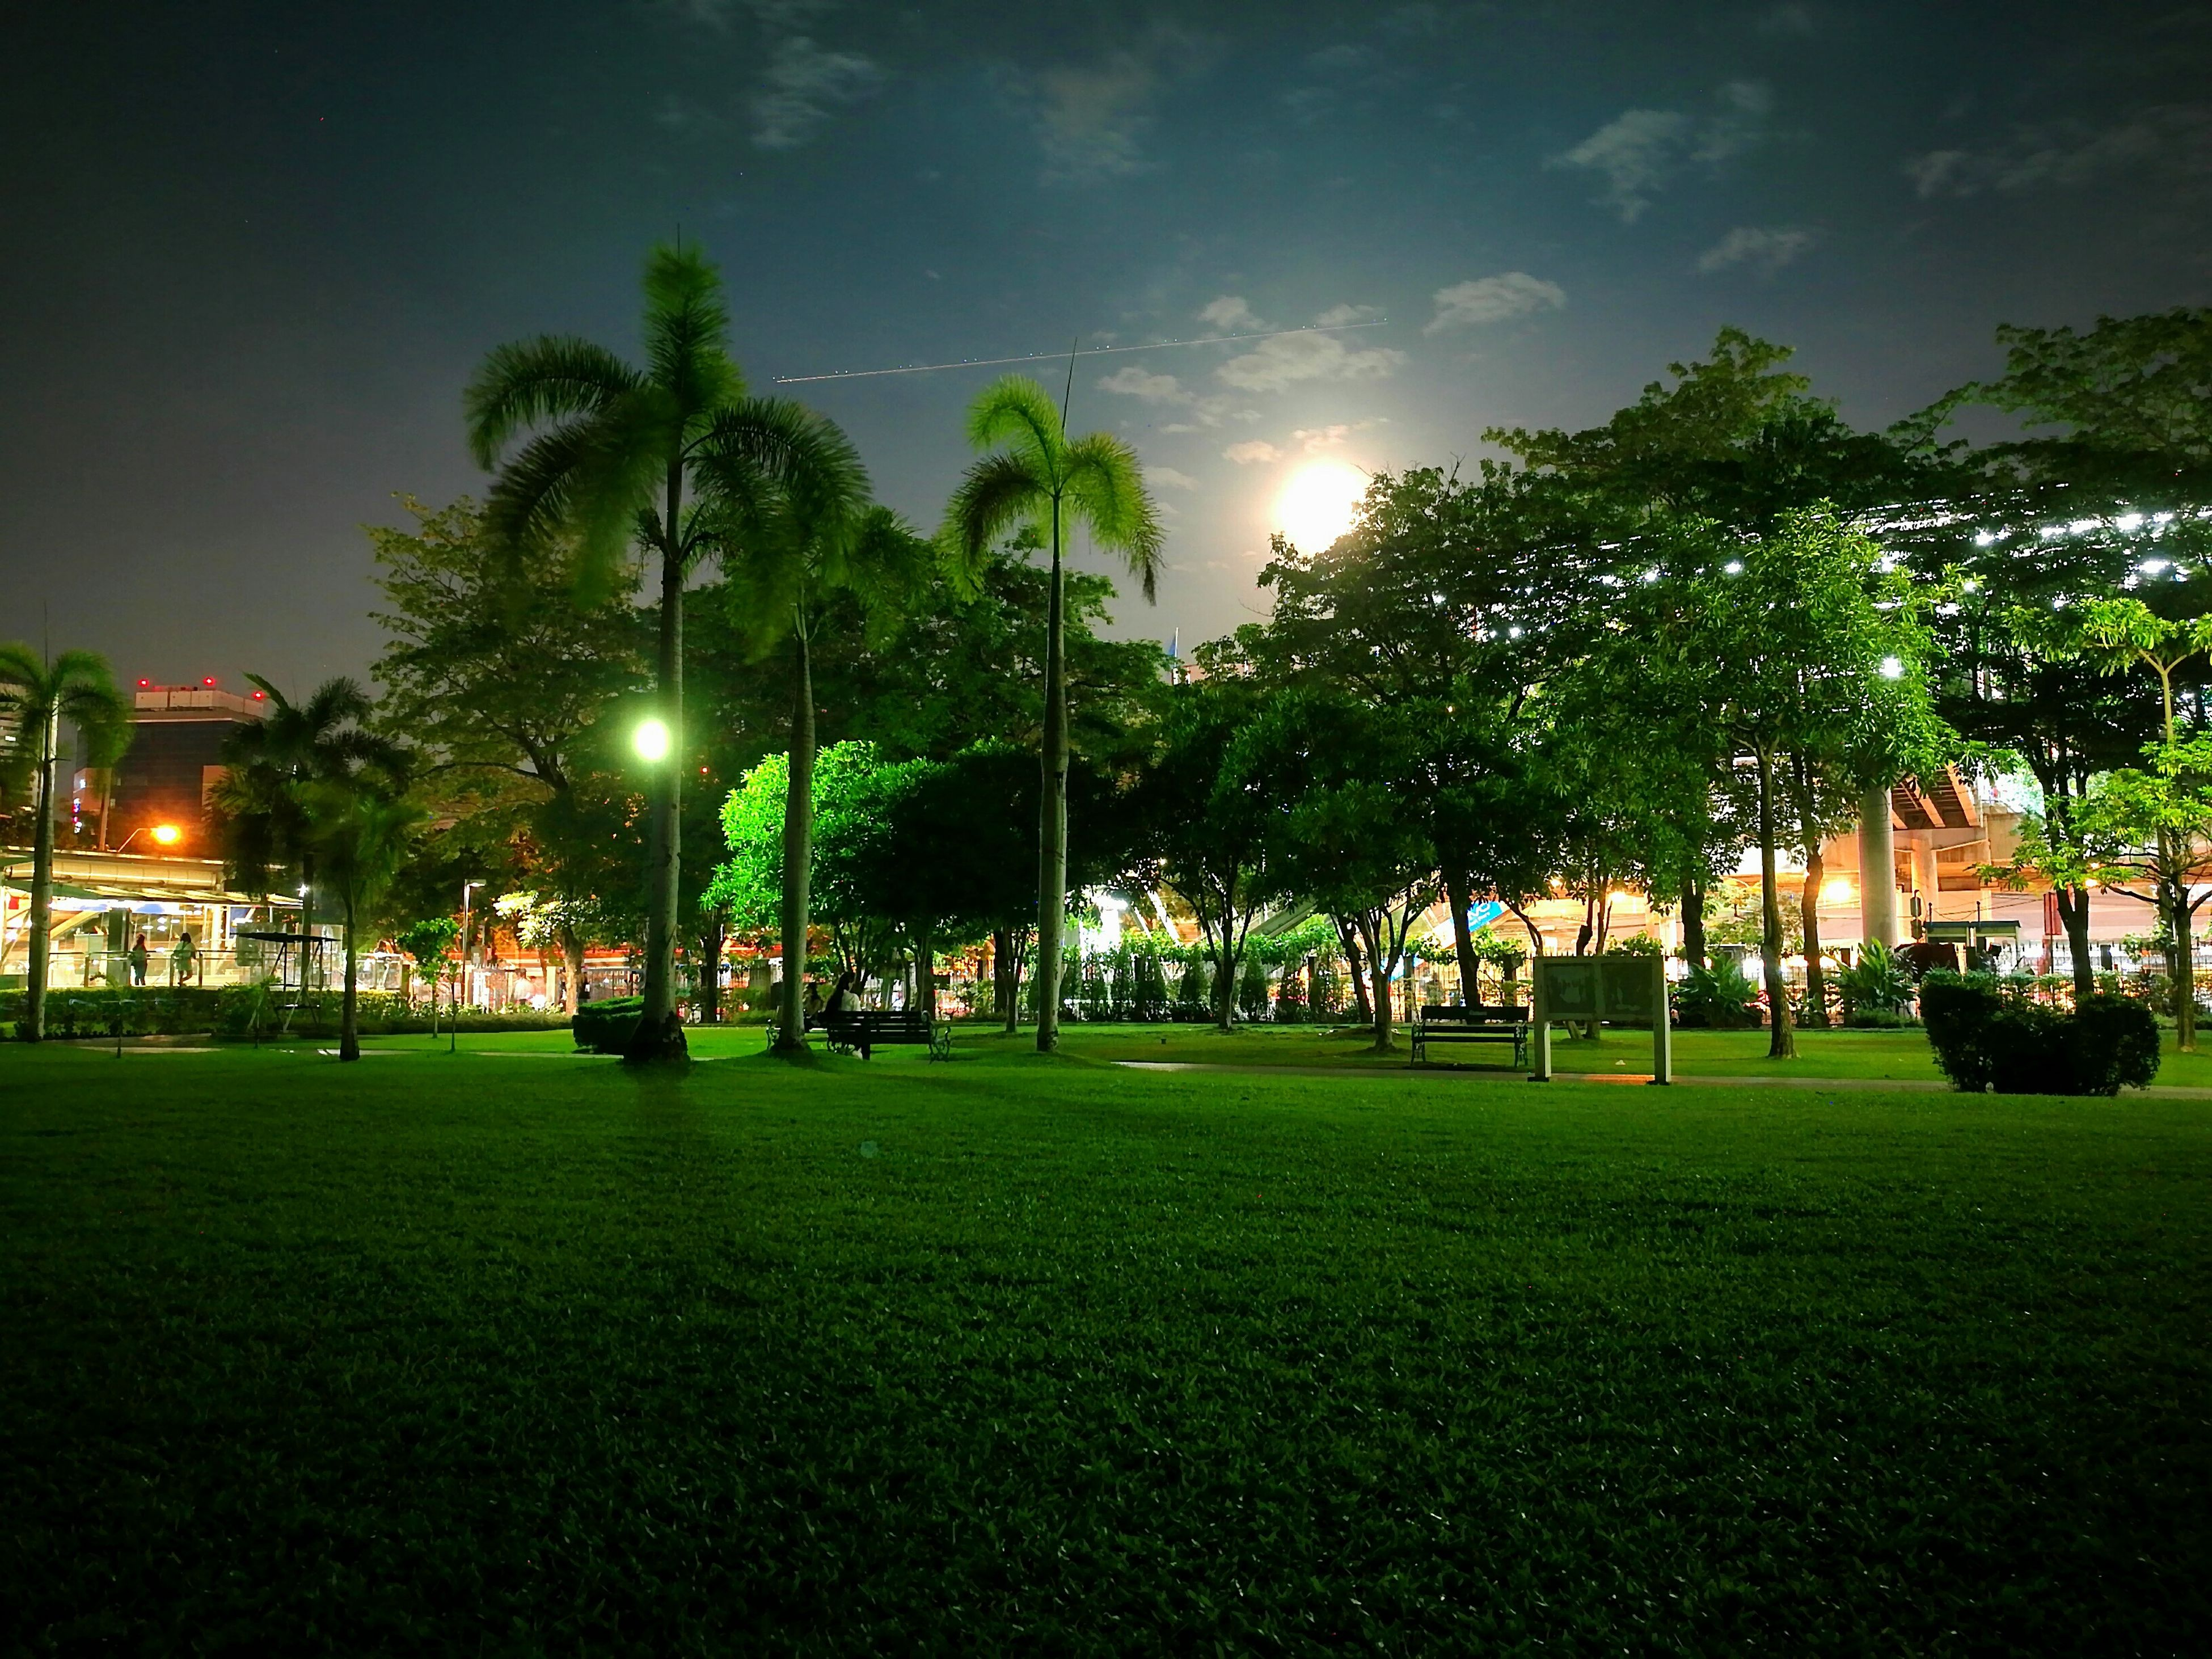 grass, palm tree, tree, tranquil scene, illuminated, tranquility, mid distance, night, tree trunk, solitude, green color, lighting equipment, sky, green, park - man made space, calm, scenics, tall, growth, nature, surface level, outdoors, sun, beauty in nature, footpath, countryside, park, lens flare, no people